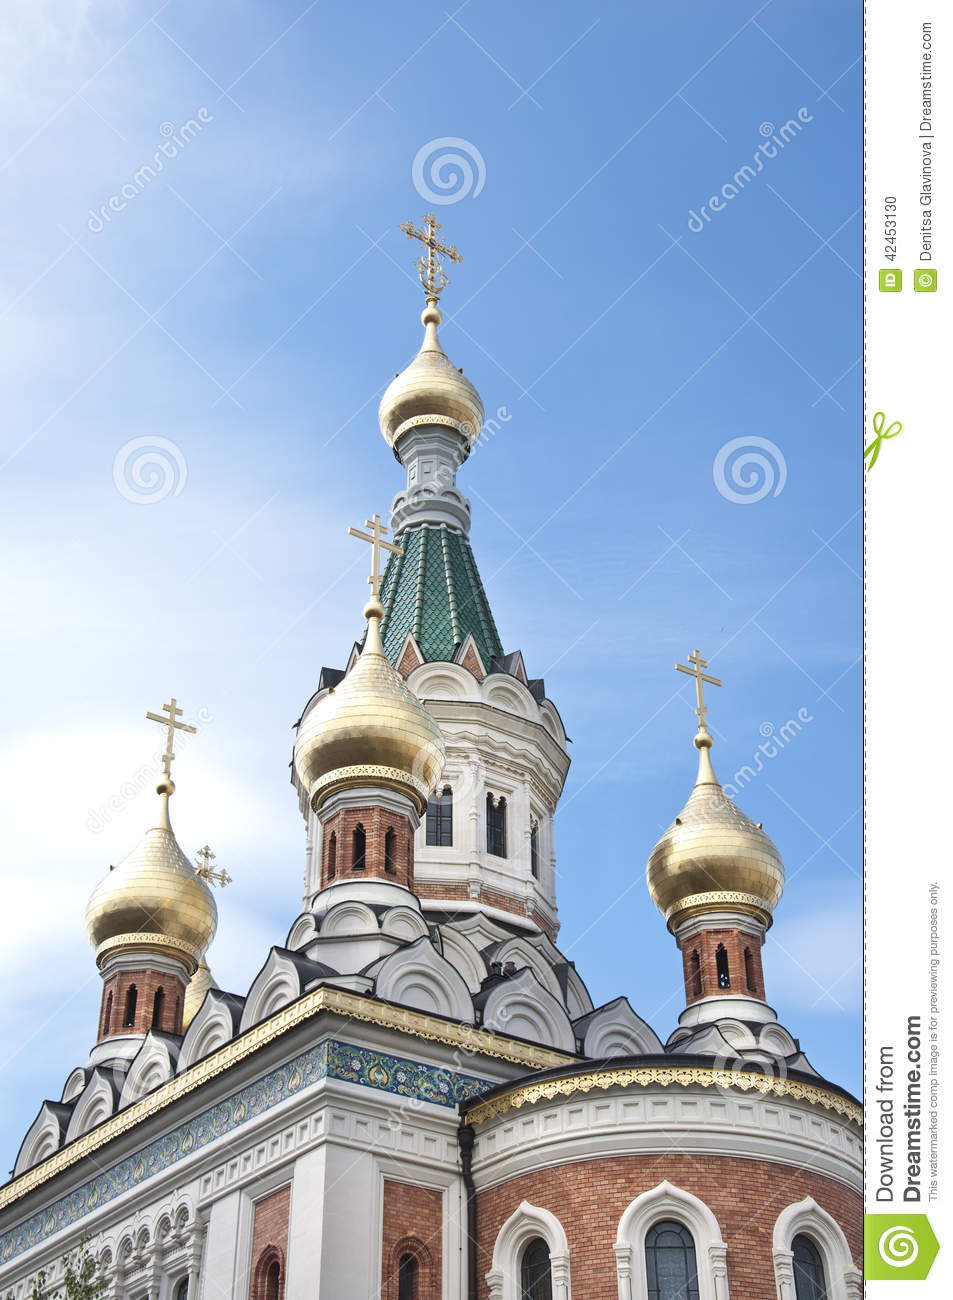 Russische orthodoxe Kathedrale in Wien